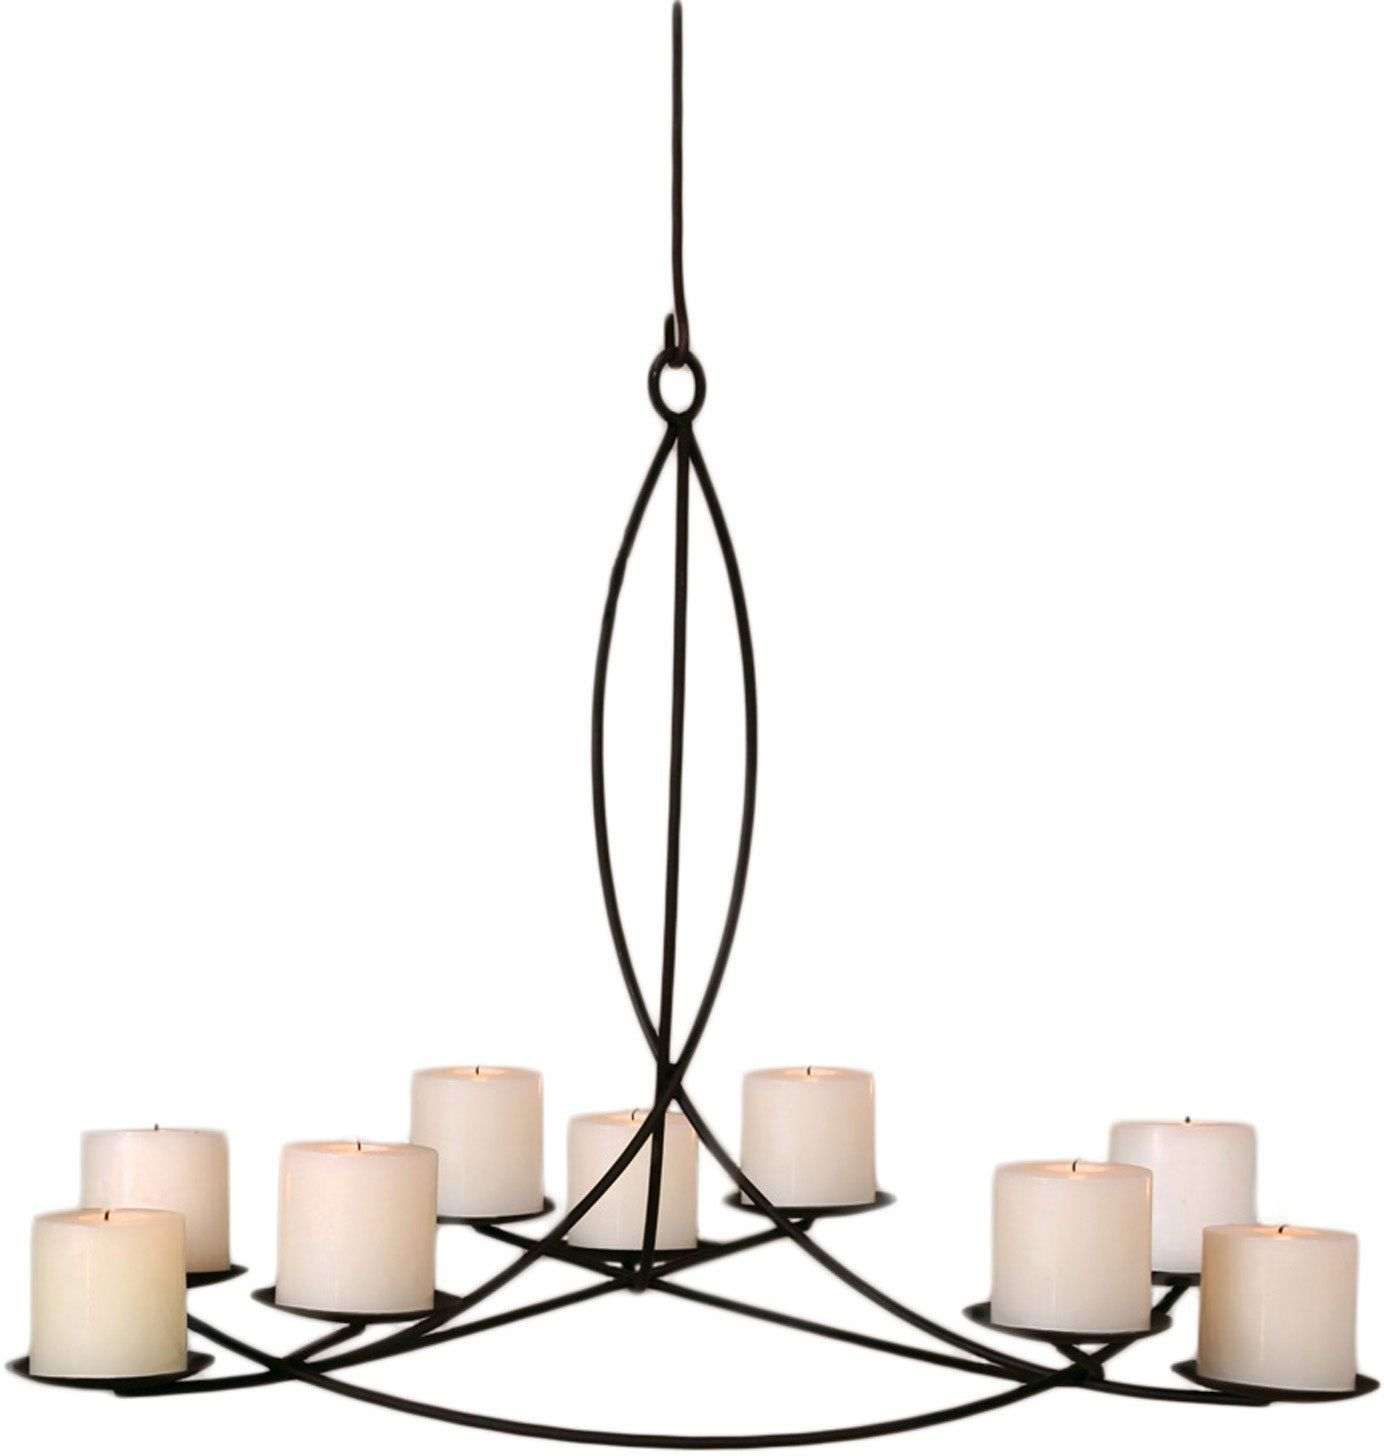 Alluring Lighting Non Electric Chandelier For Your Wrought Iron Hanging Candle